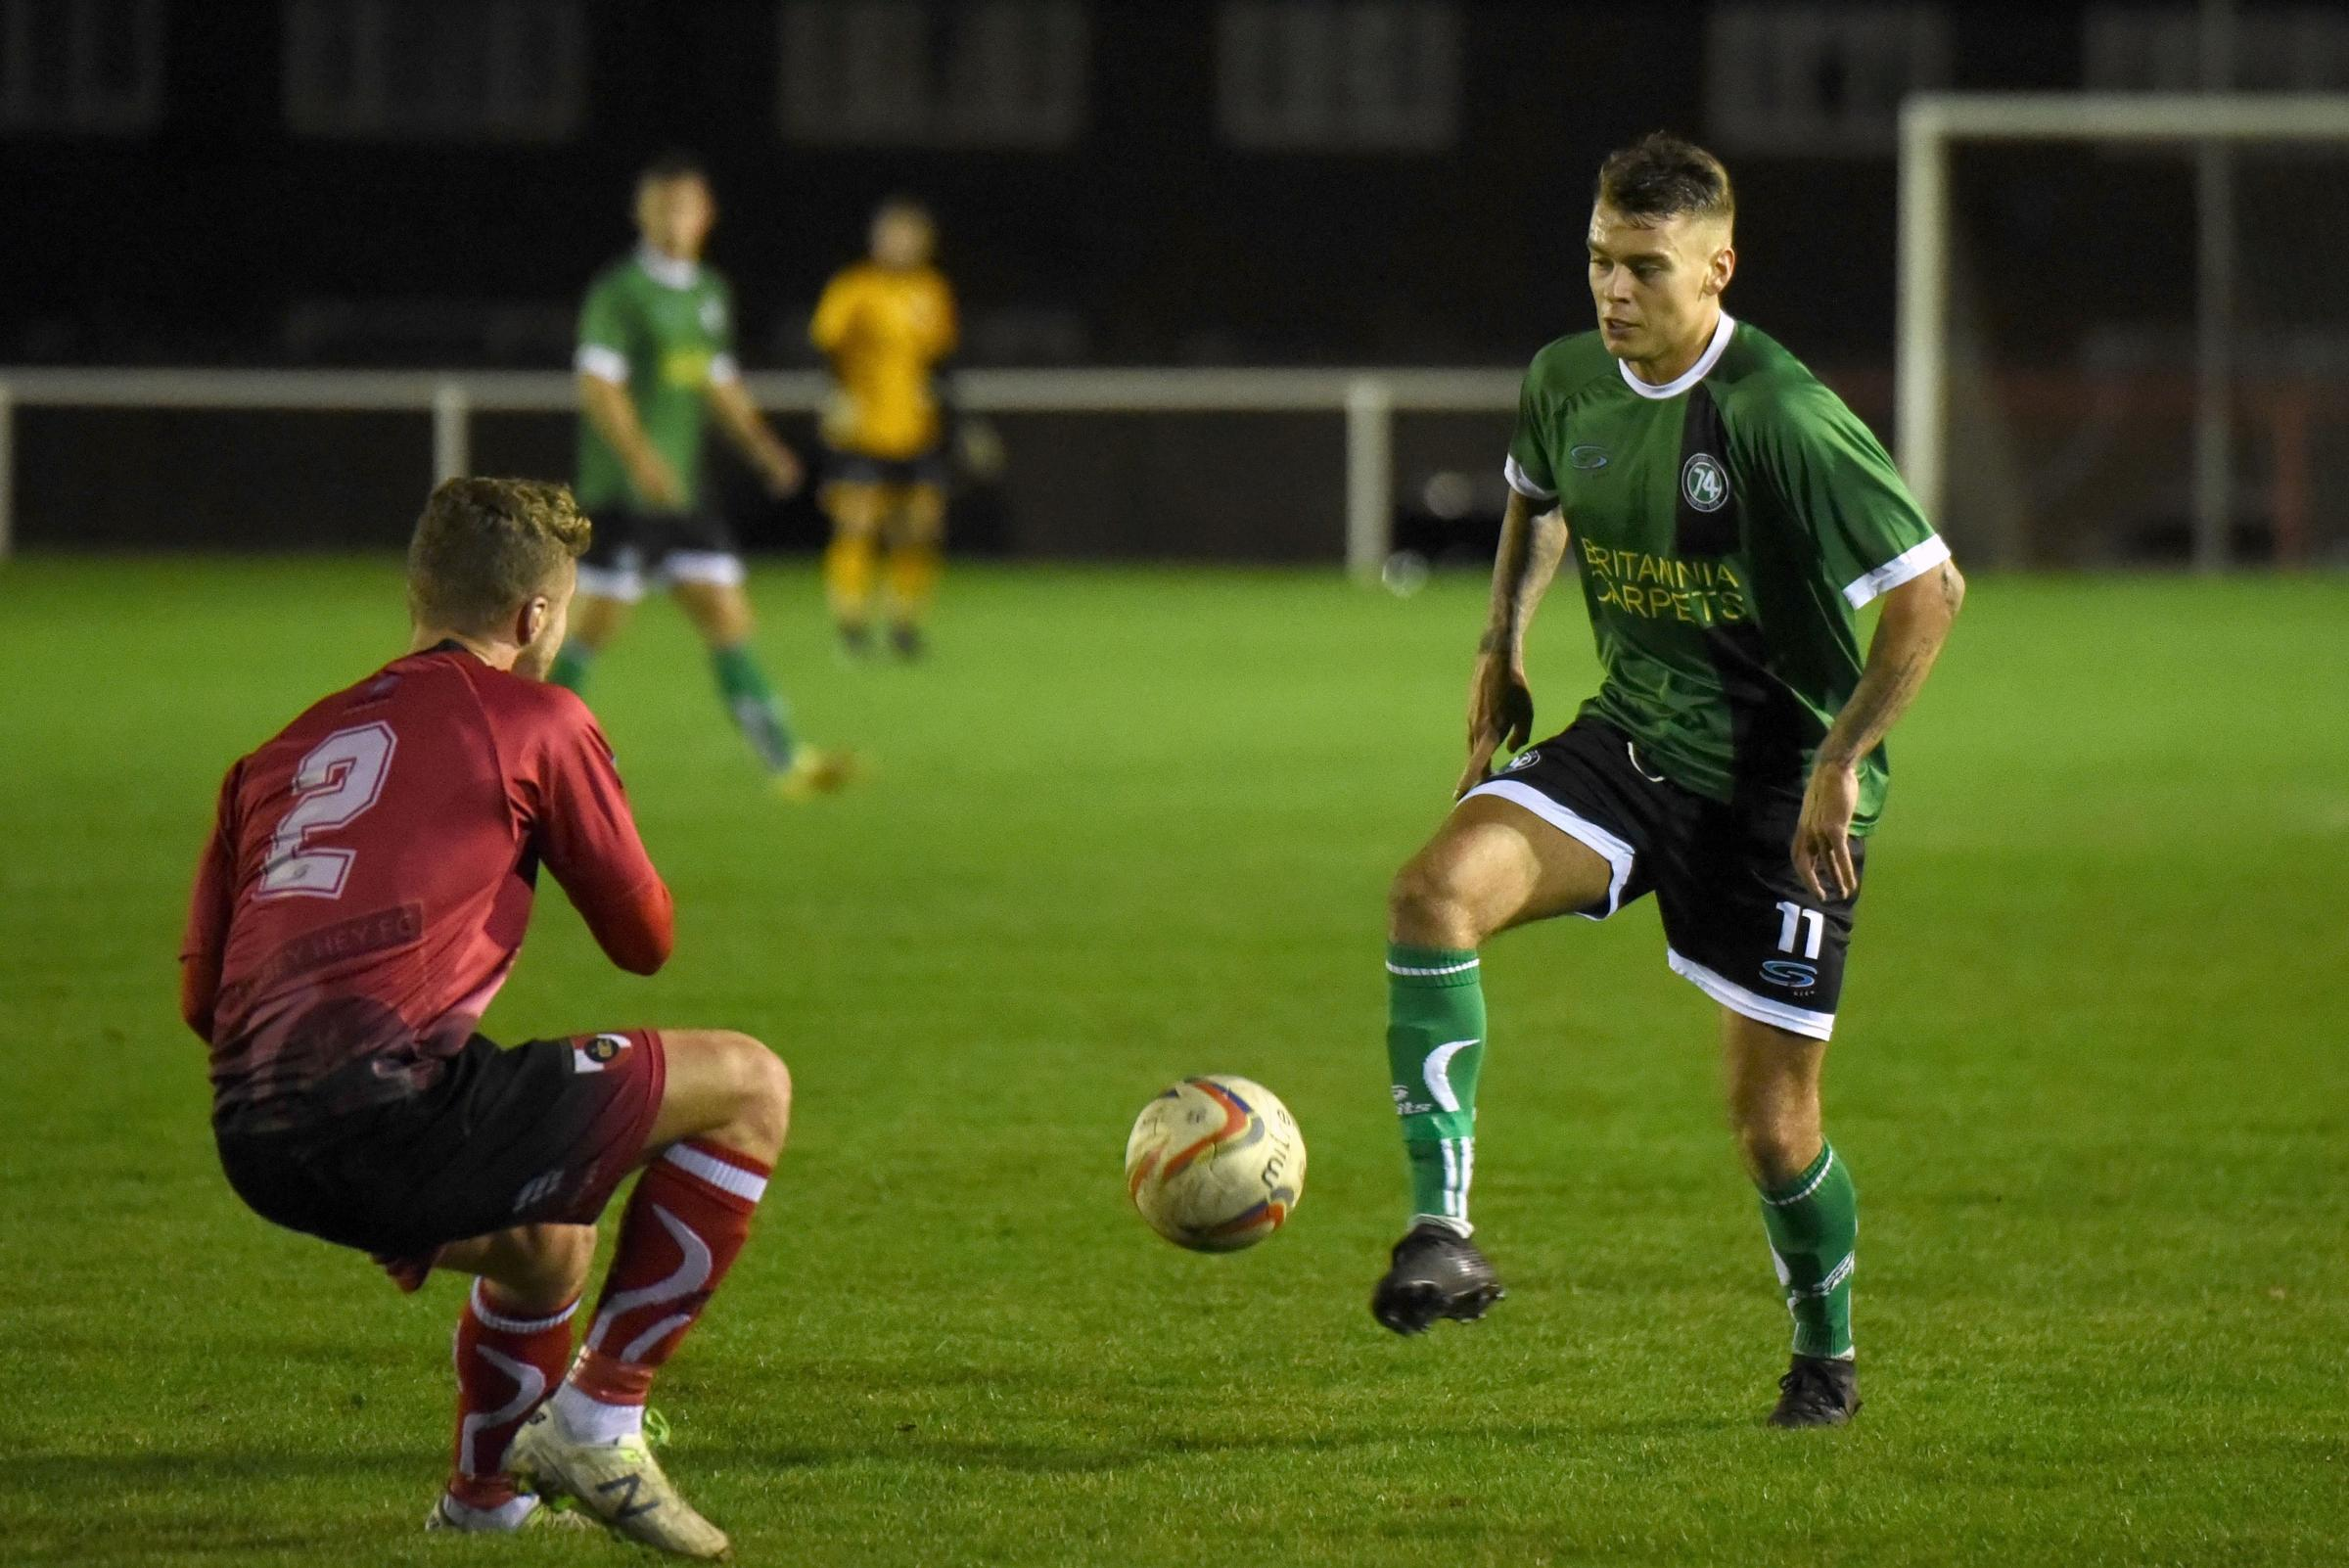 Action from 1874 Northwich's midweek loss at Abbey Hey. Picture by Ian Dutton